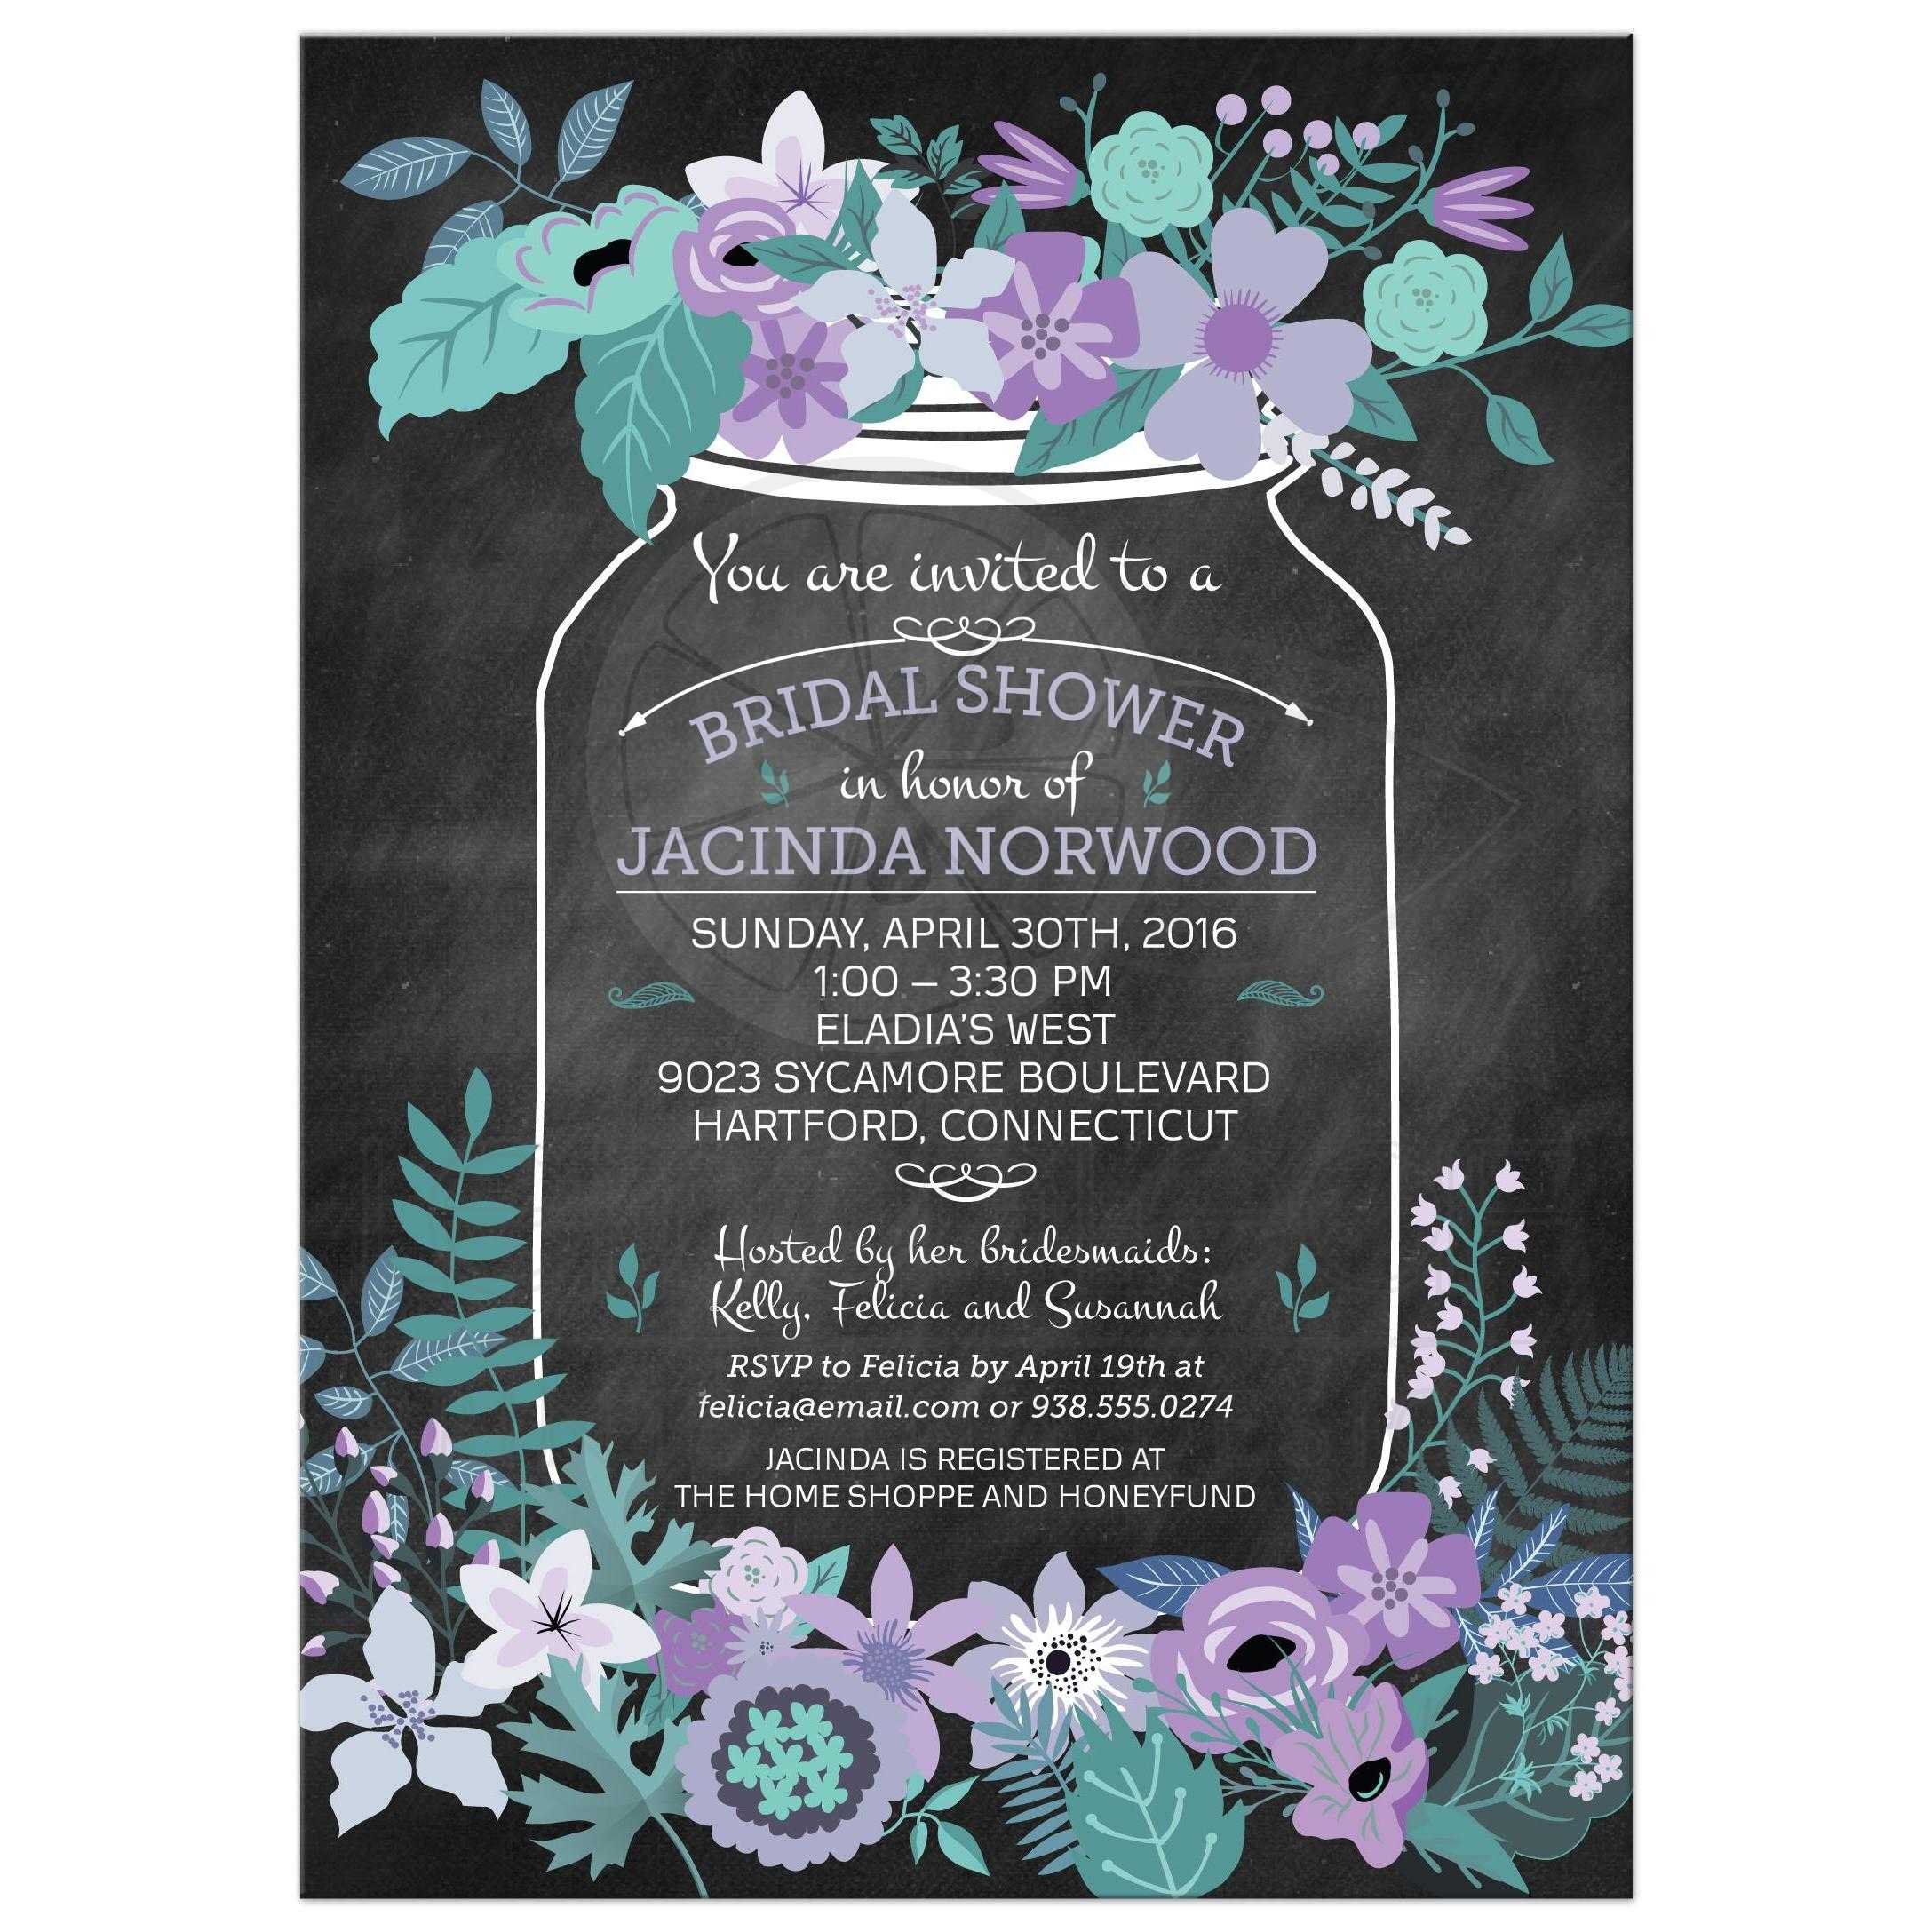 Chalkboard mason jar purple and green flowers bridal wedding shower bridal wedding shower invitation chalkboard mason jar purple and green flowers filmwisefo